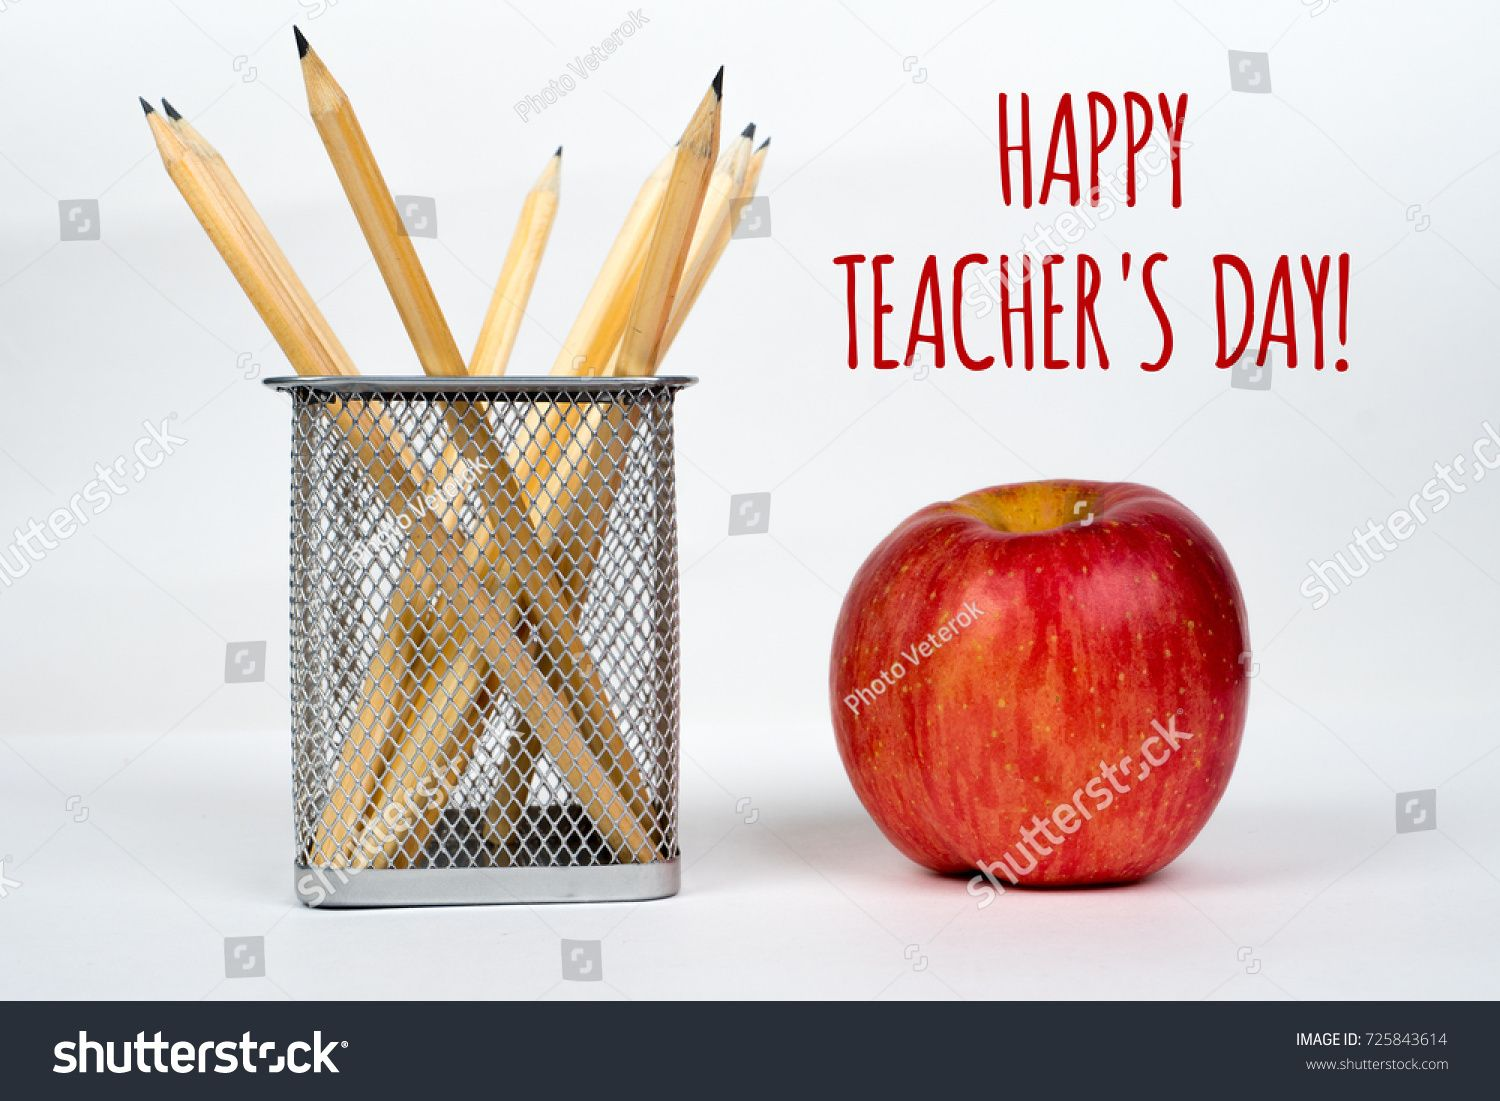 Happy Teacher S Day Simple Greetings Card With White Background Ad Ad Day Teacher Happy In 2020 Happy Teachers Day Preschool Newsletter Templates Teachers Day